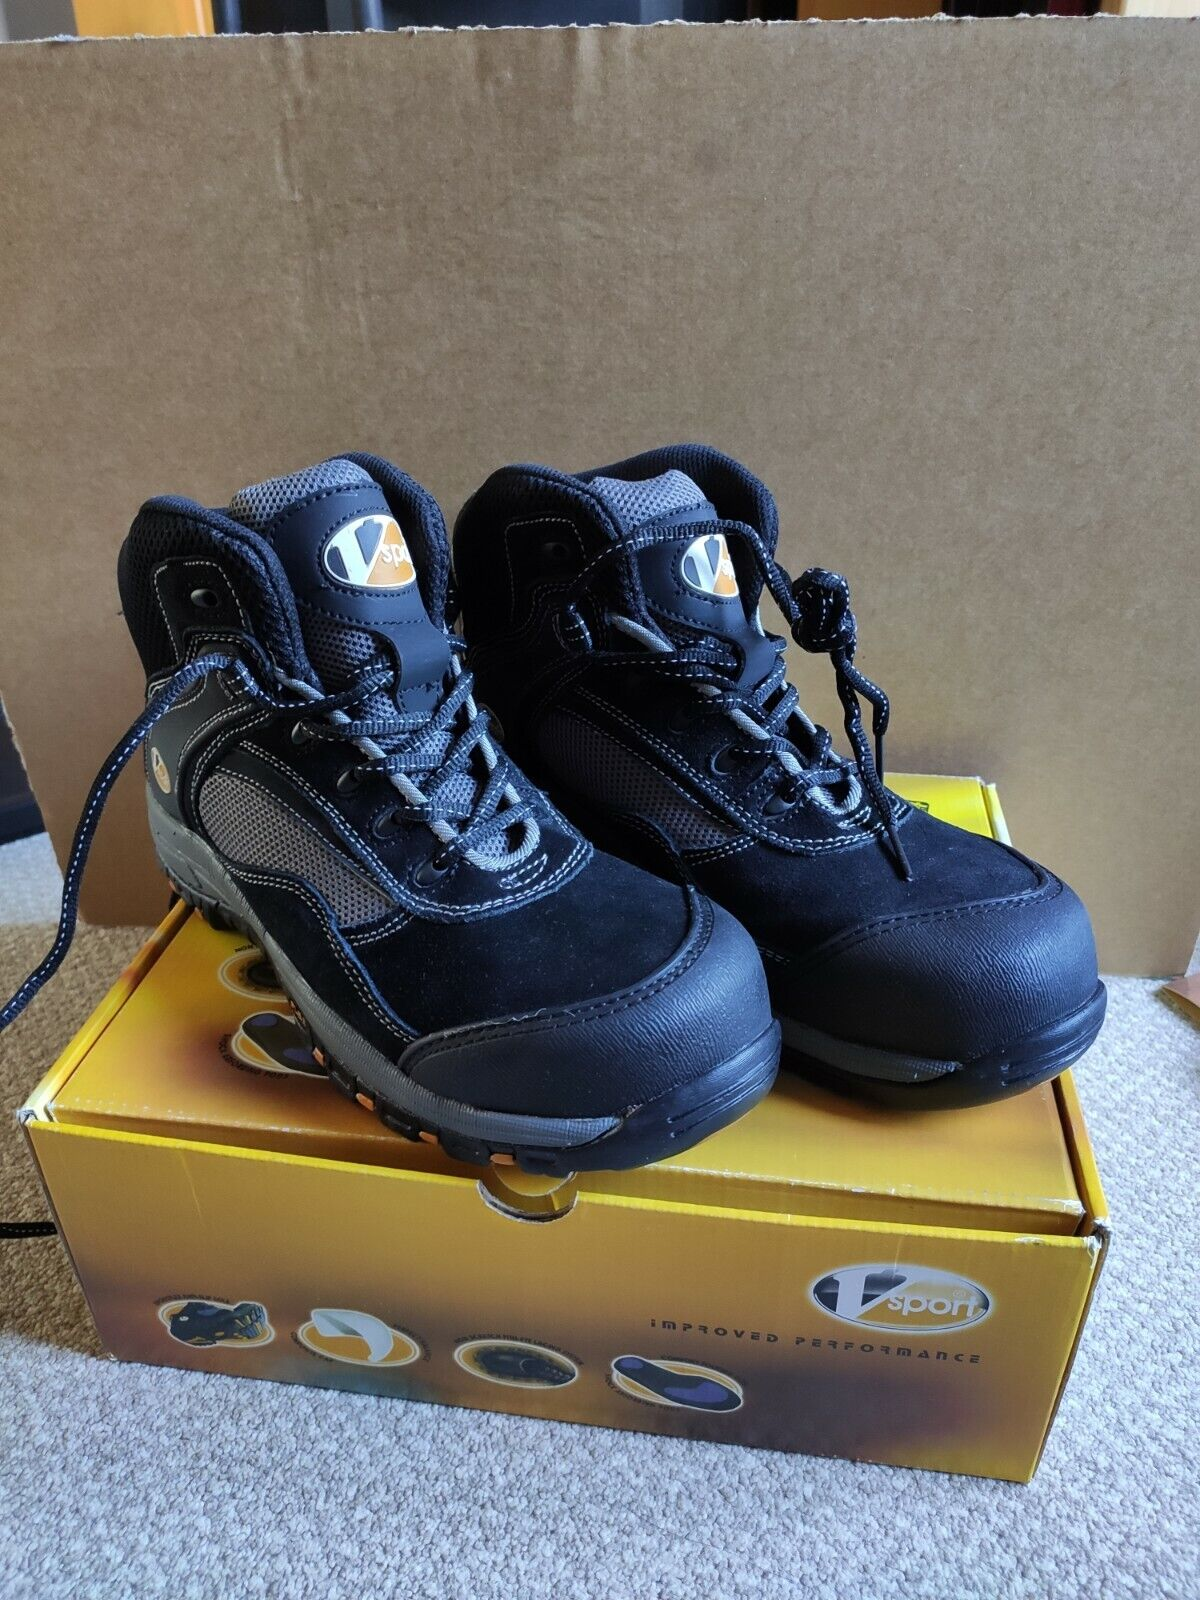 V12 Track Safety Boots UK 8 Composite Toe Cap Trainer Sports Boots VS360